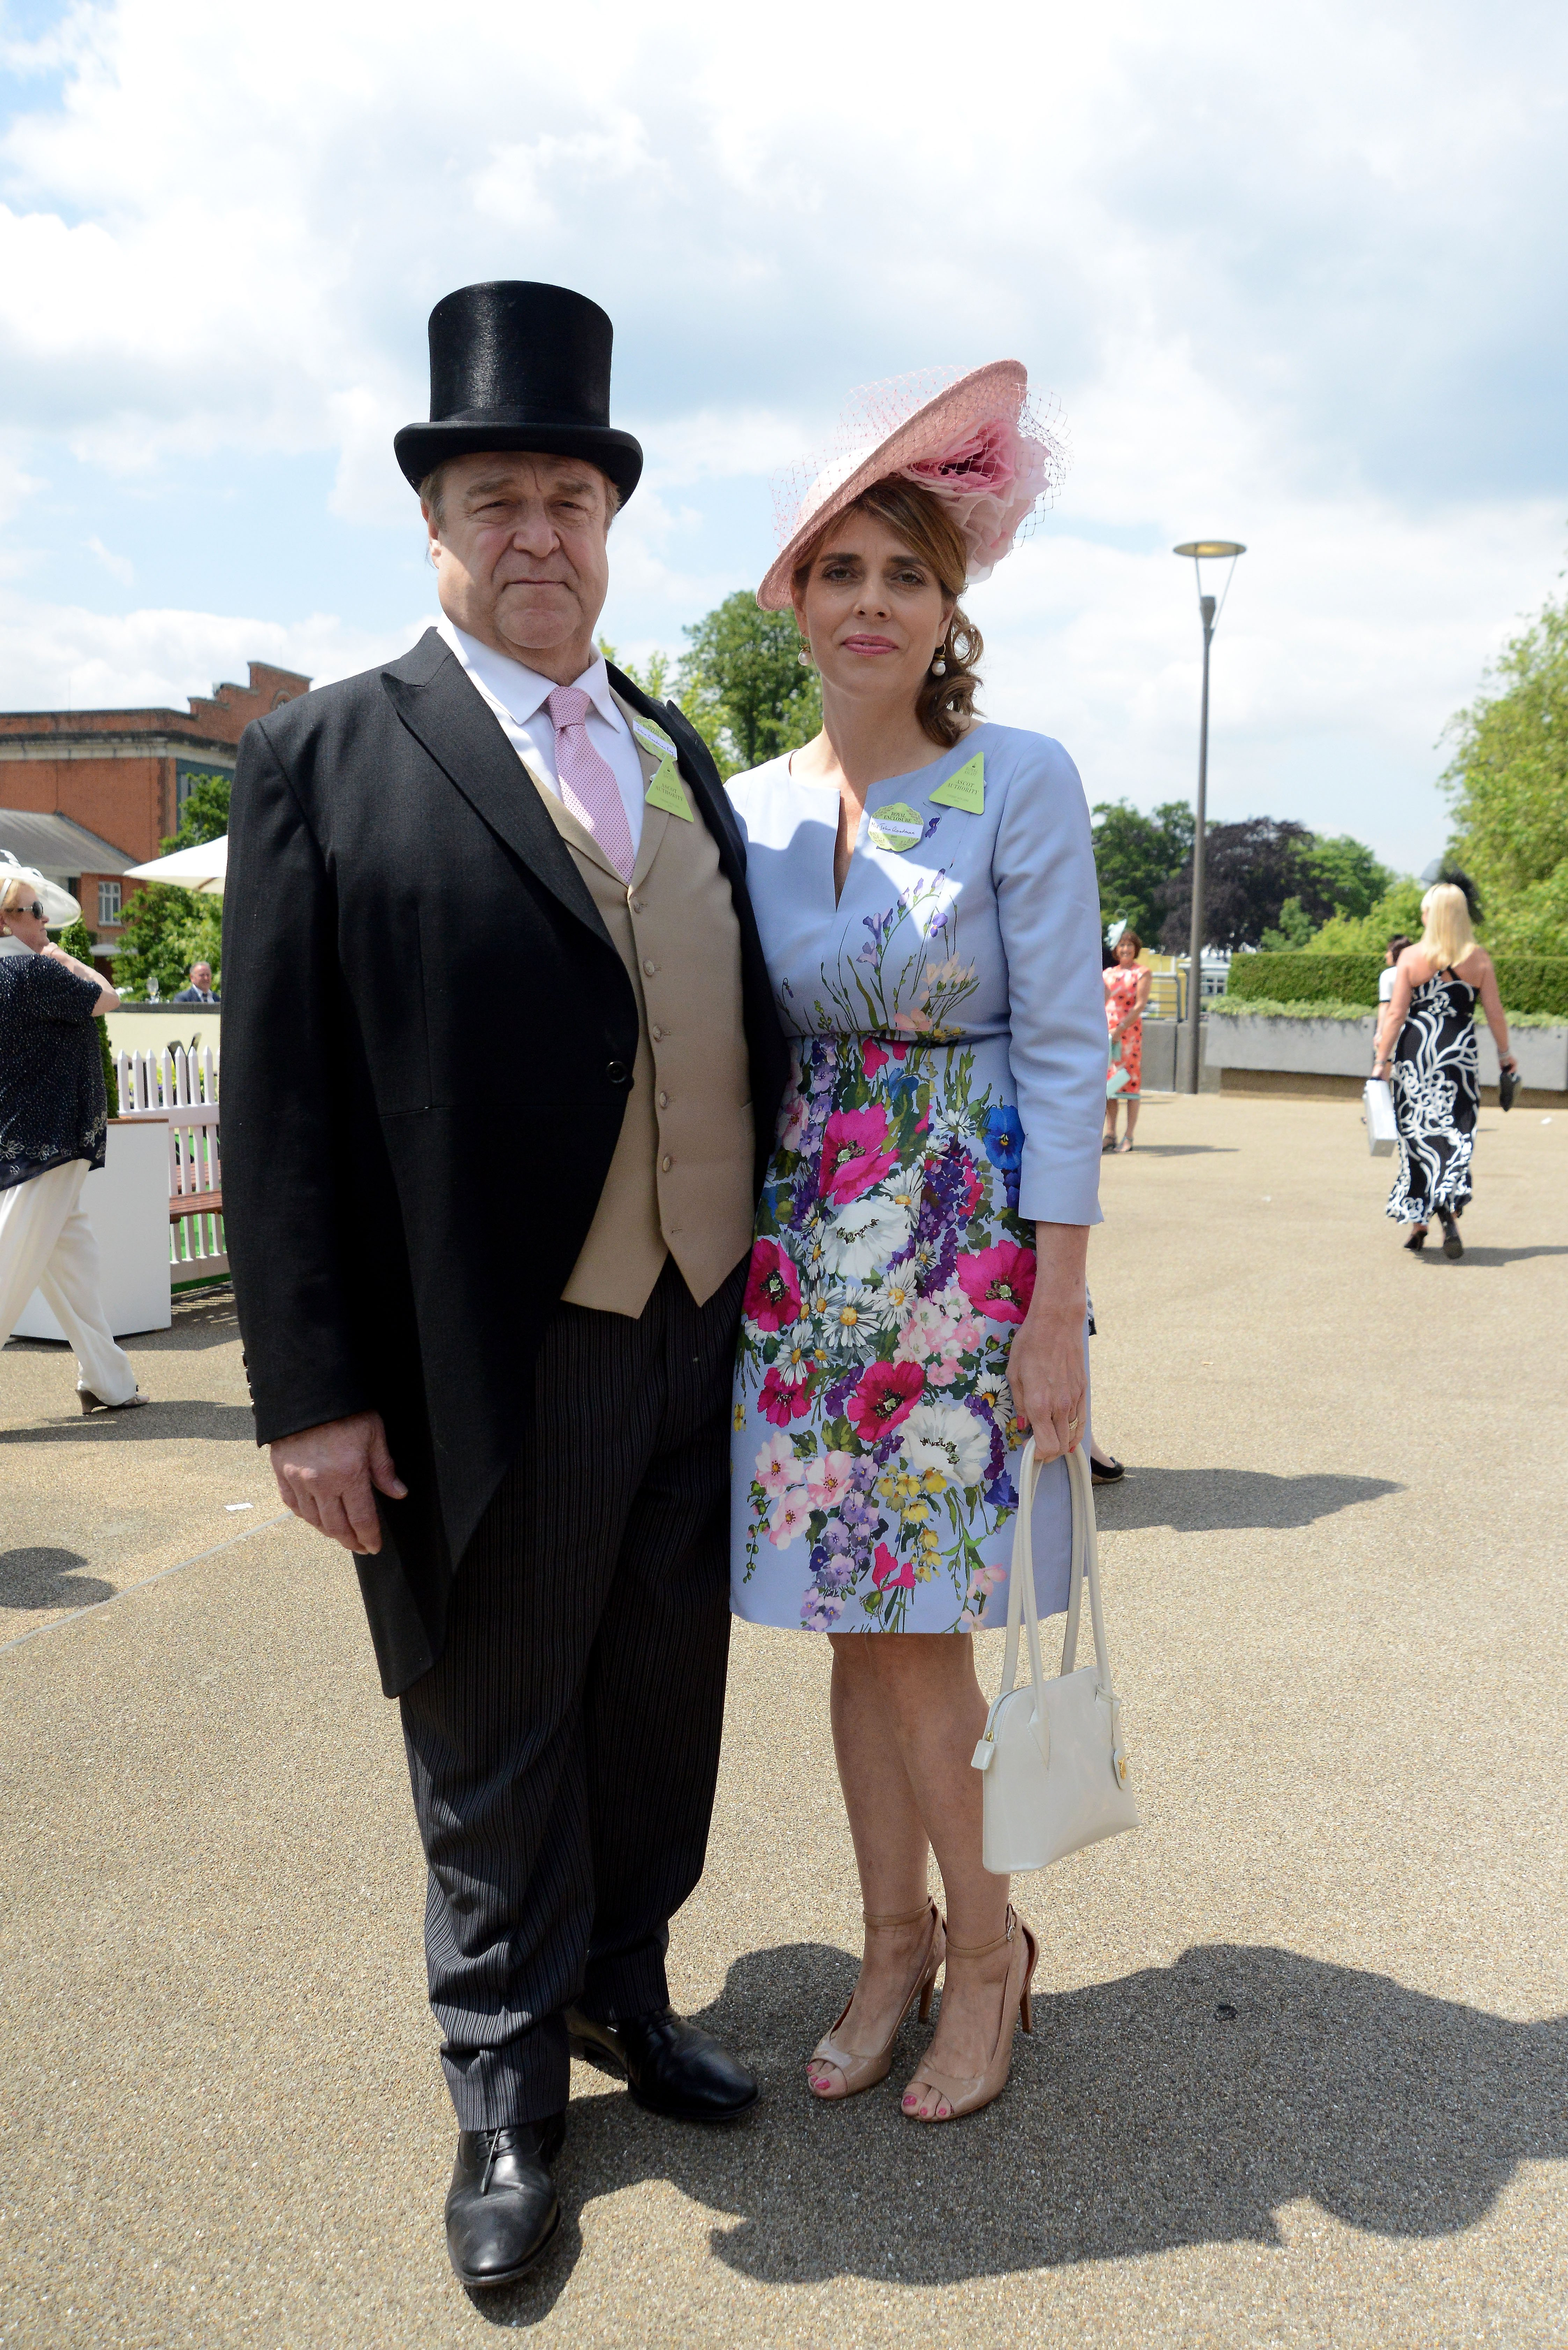 John Goodman and wife Annabeth Hartzog attend the Royal Ascot in Ascot, England on June 16, 2015 | Photo: Getty Images